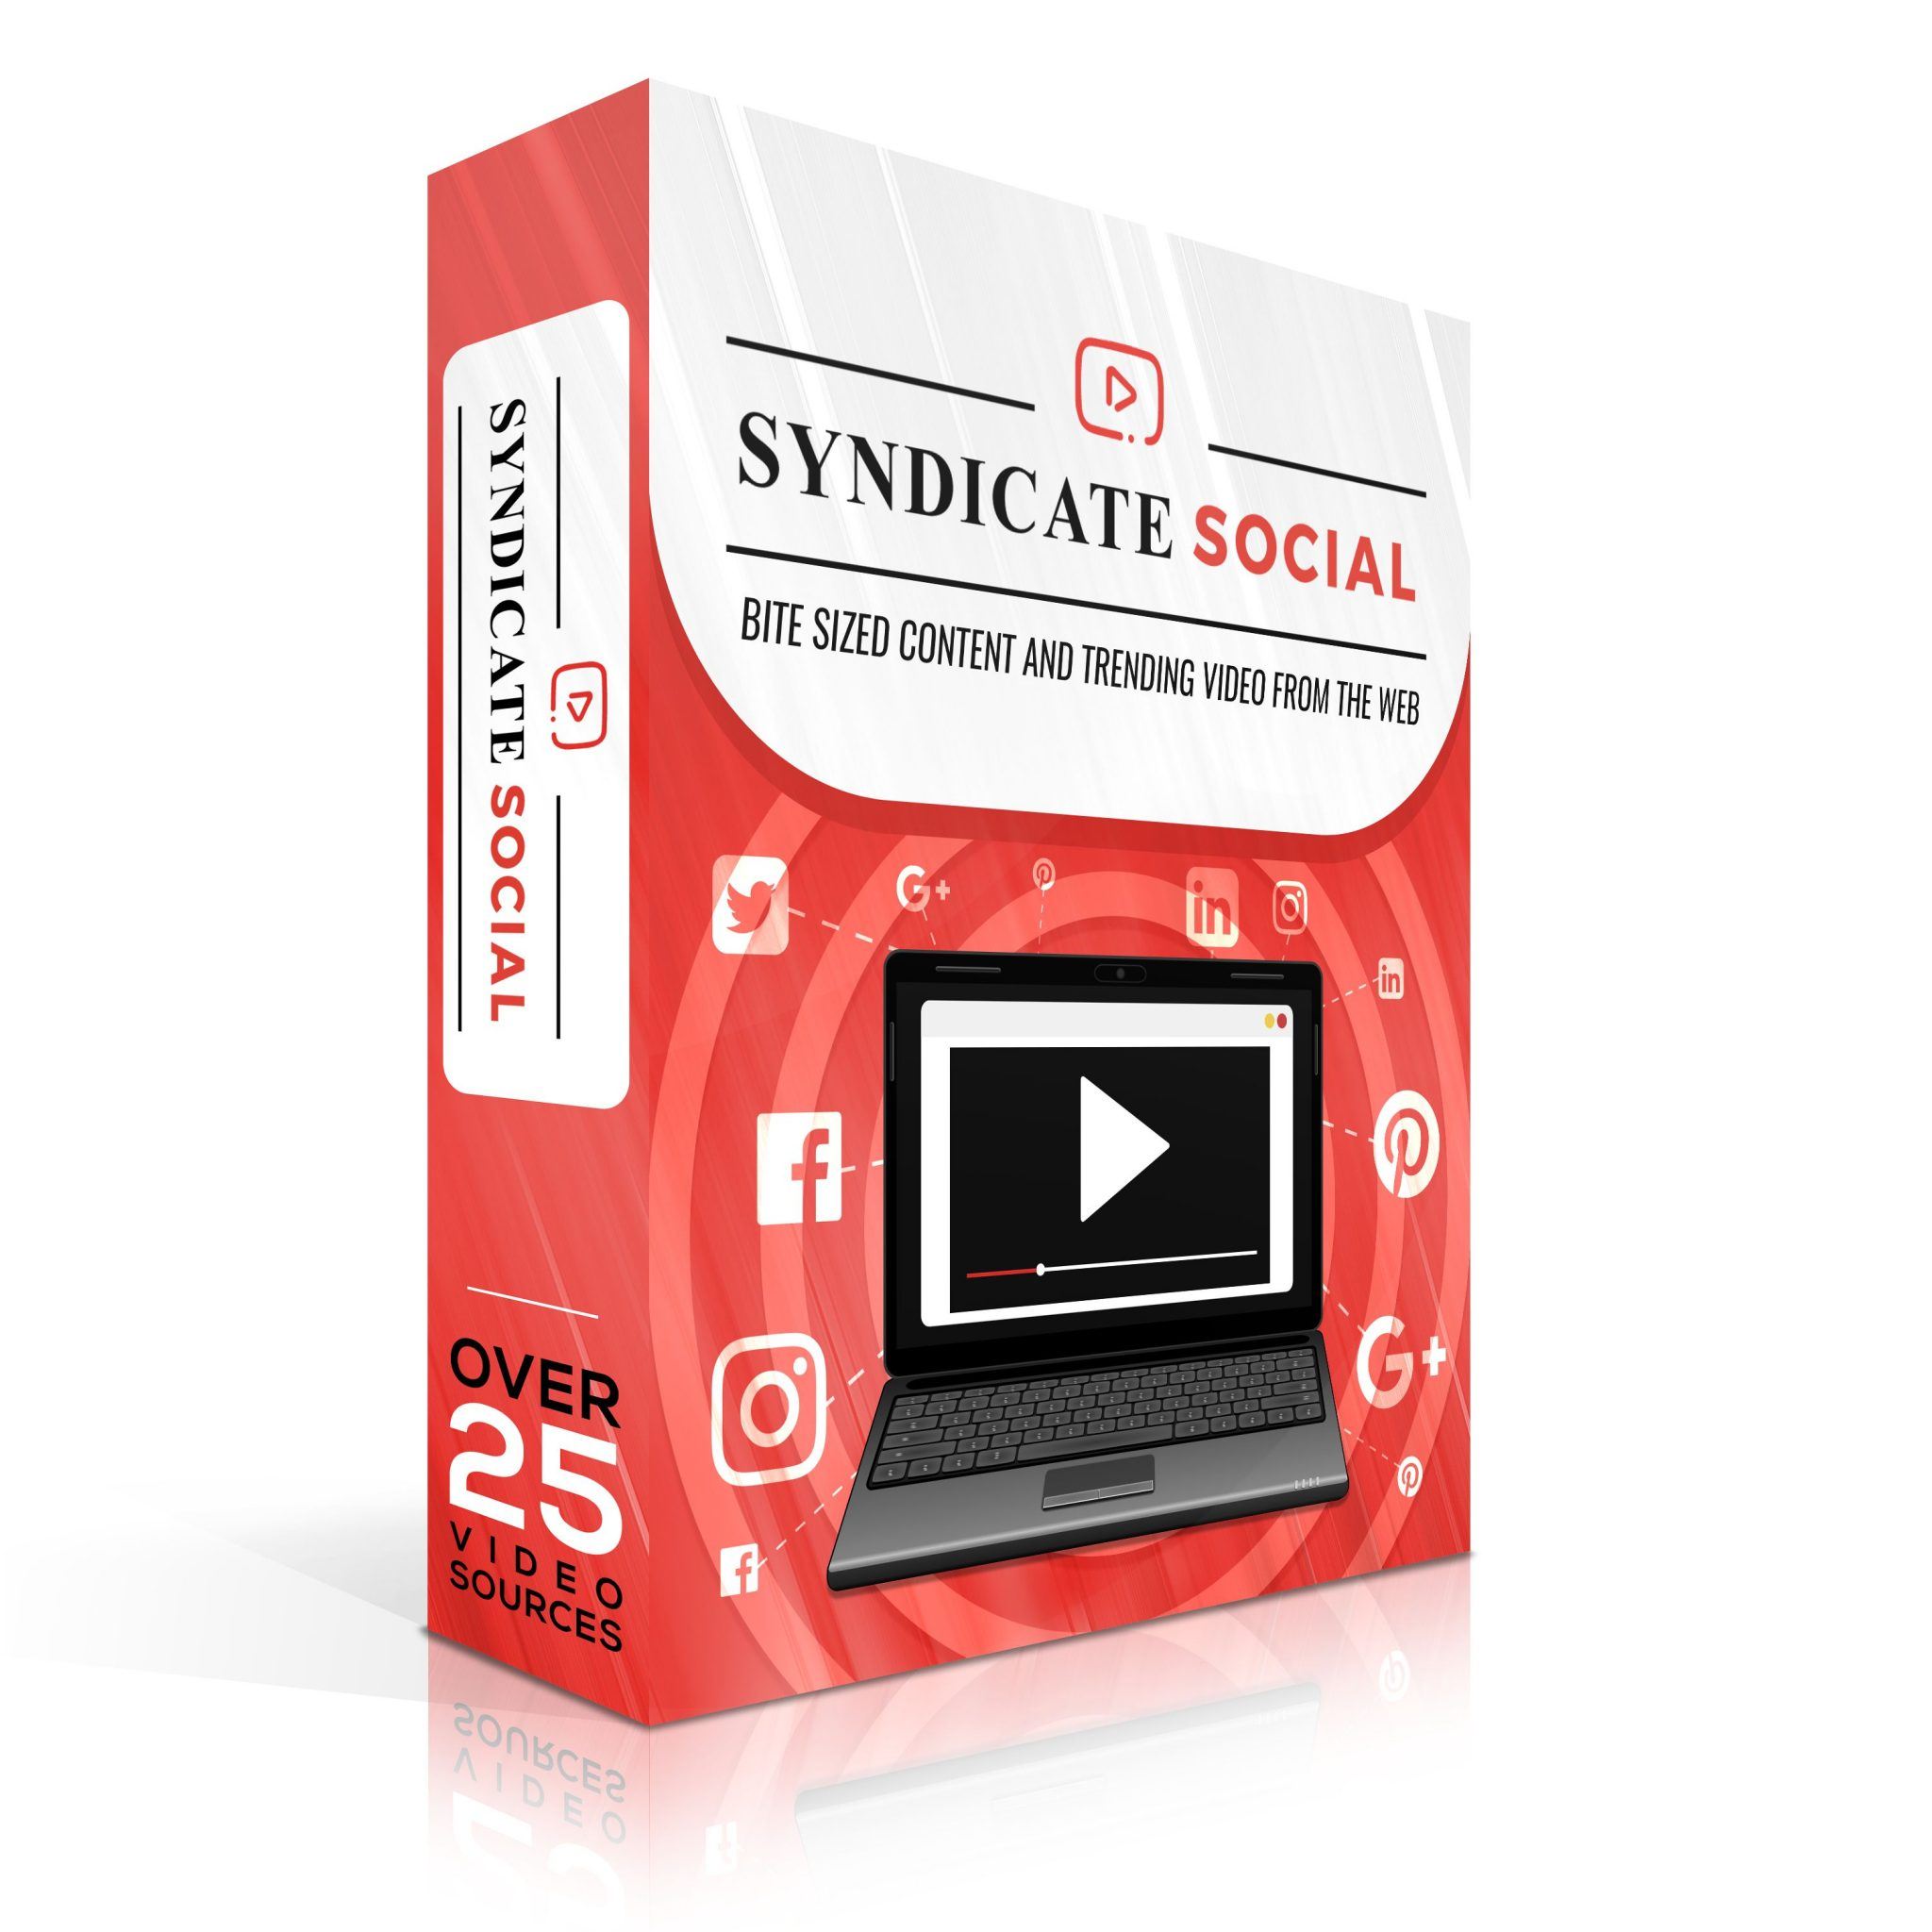 Syndicate Social